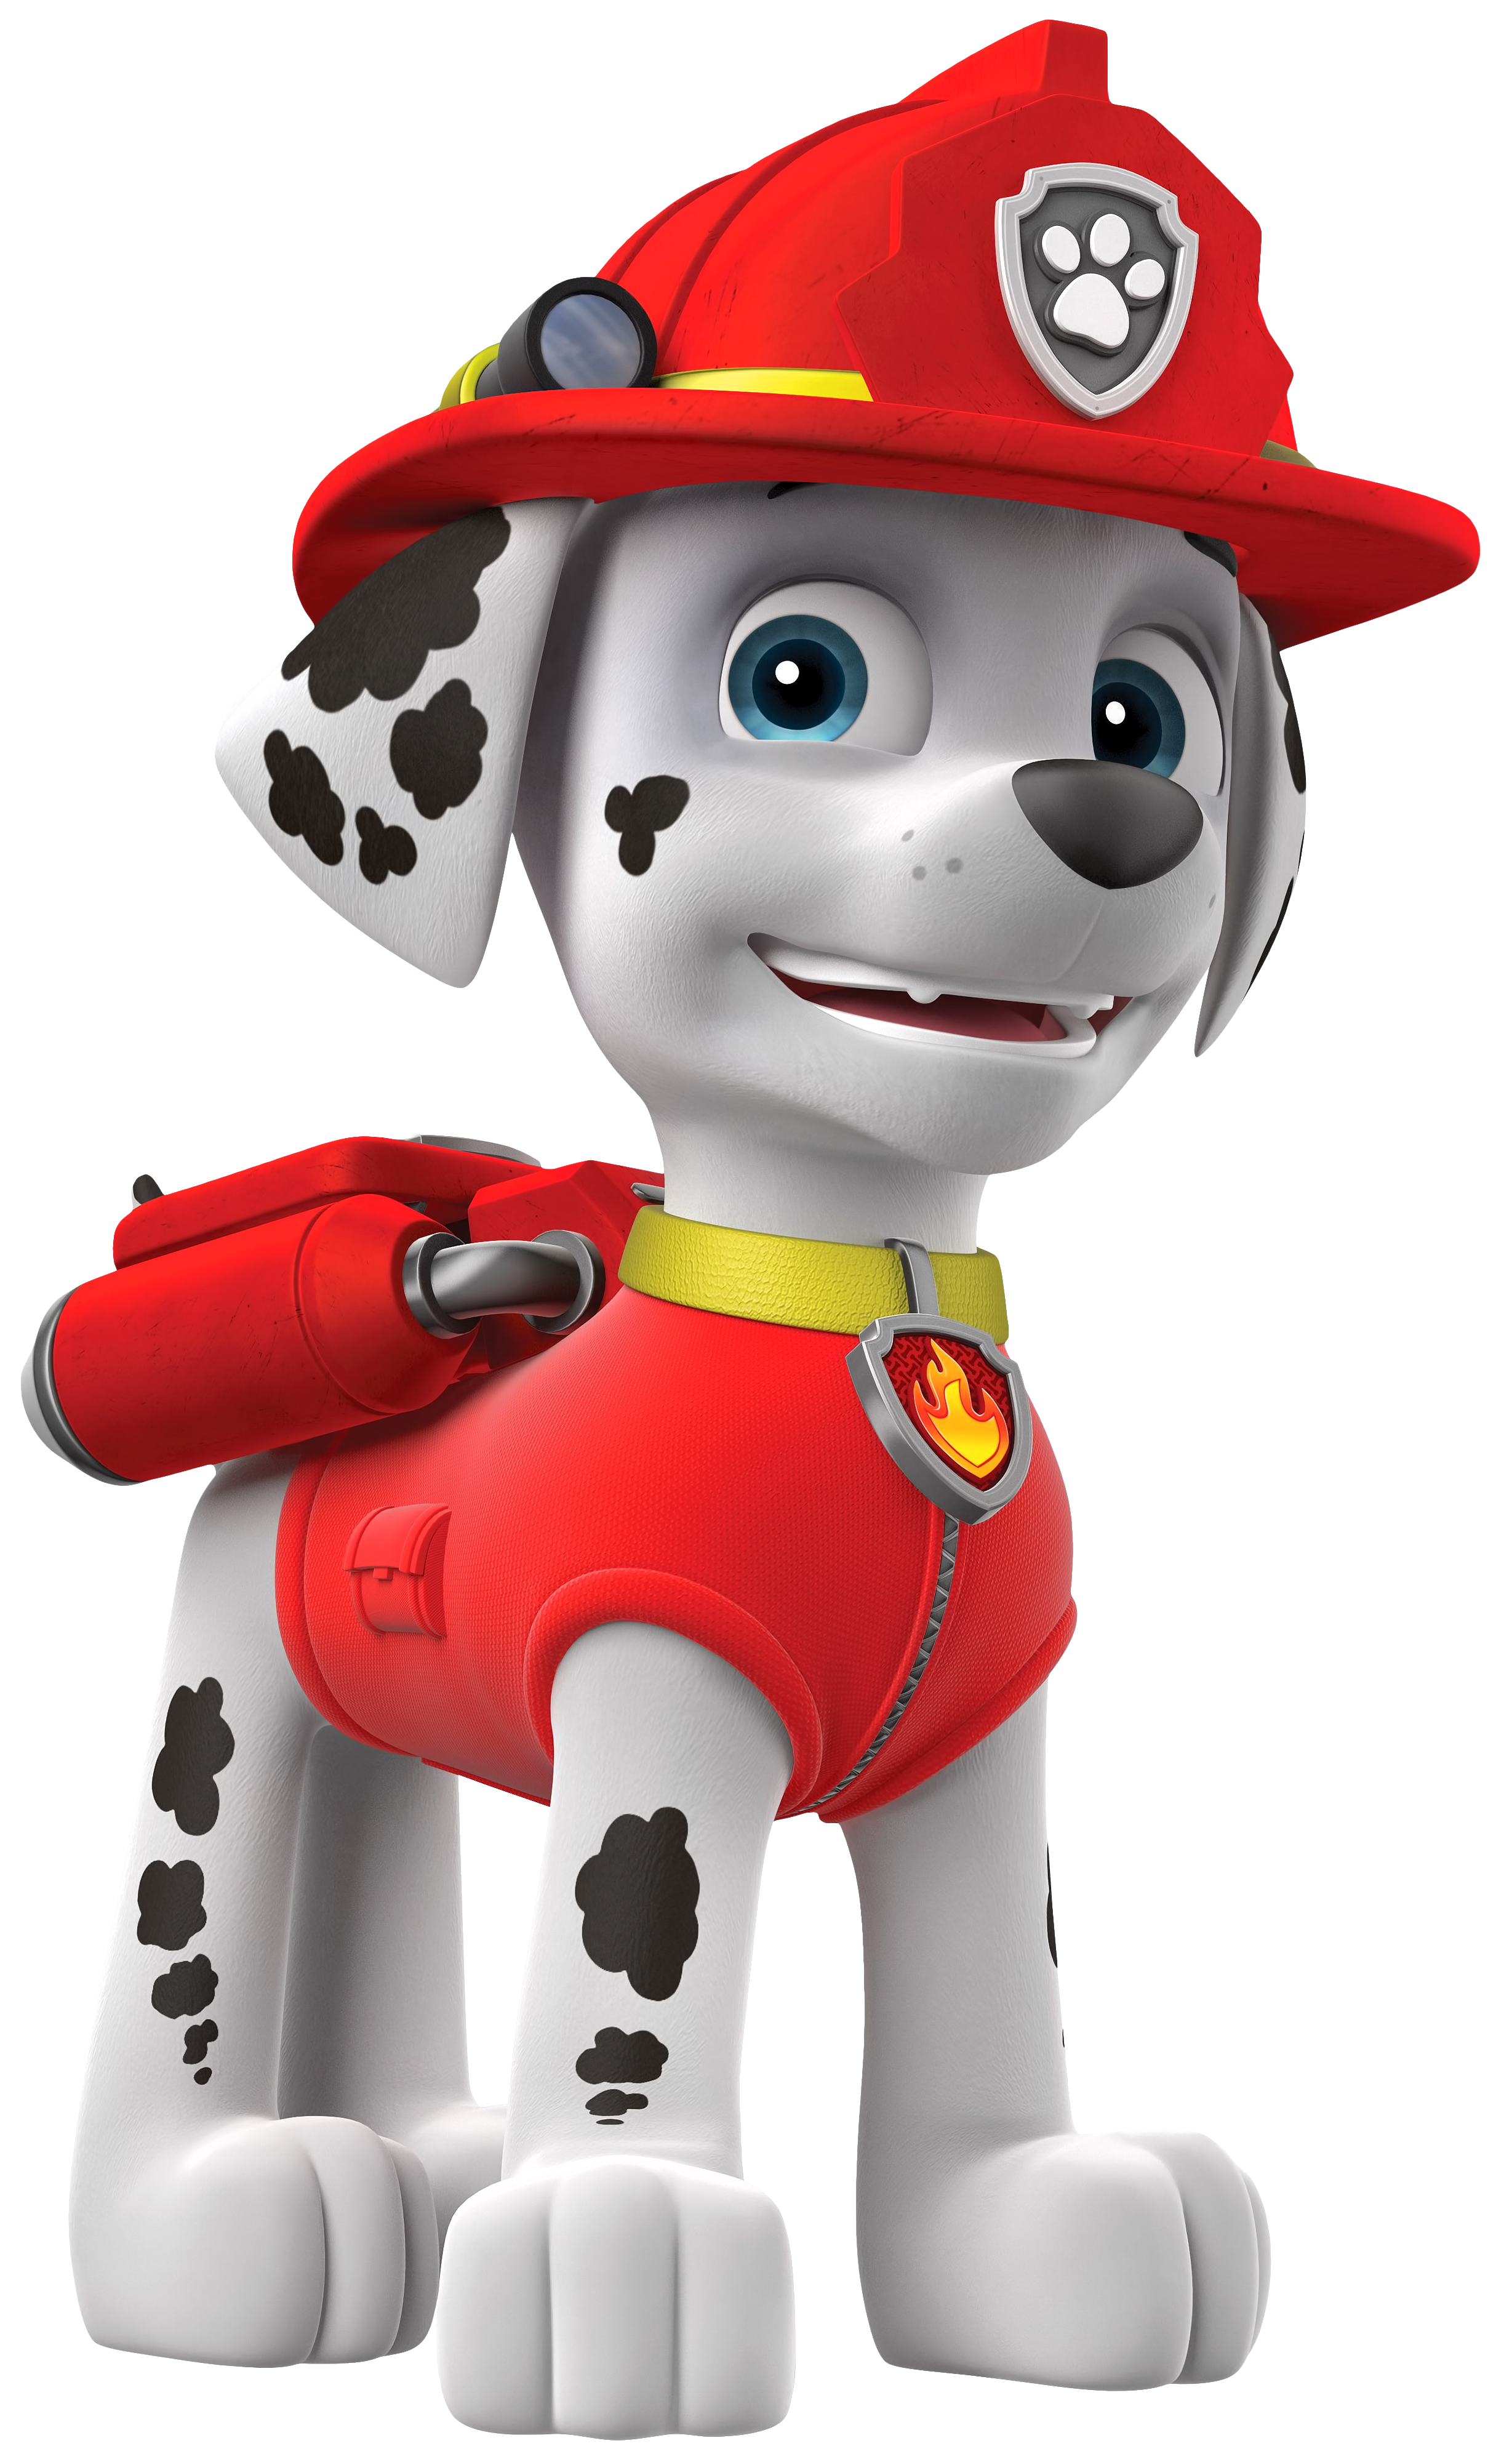 Paw patrol images png. Marshall cartoon image gallery